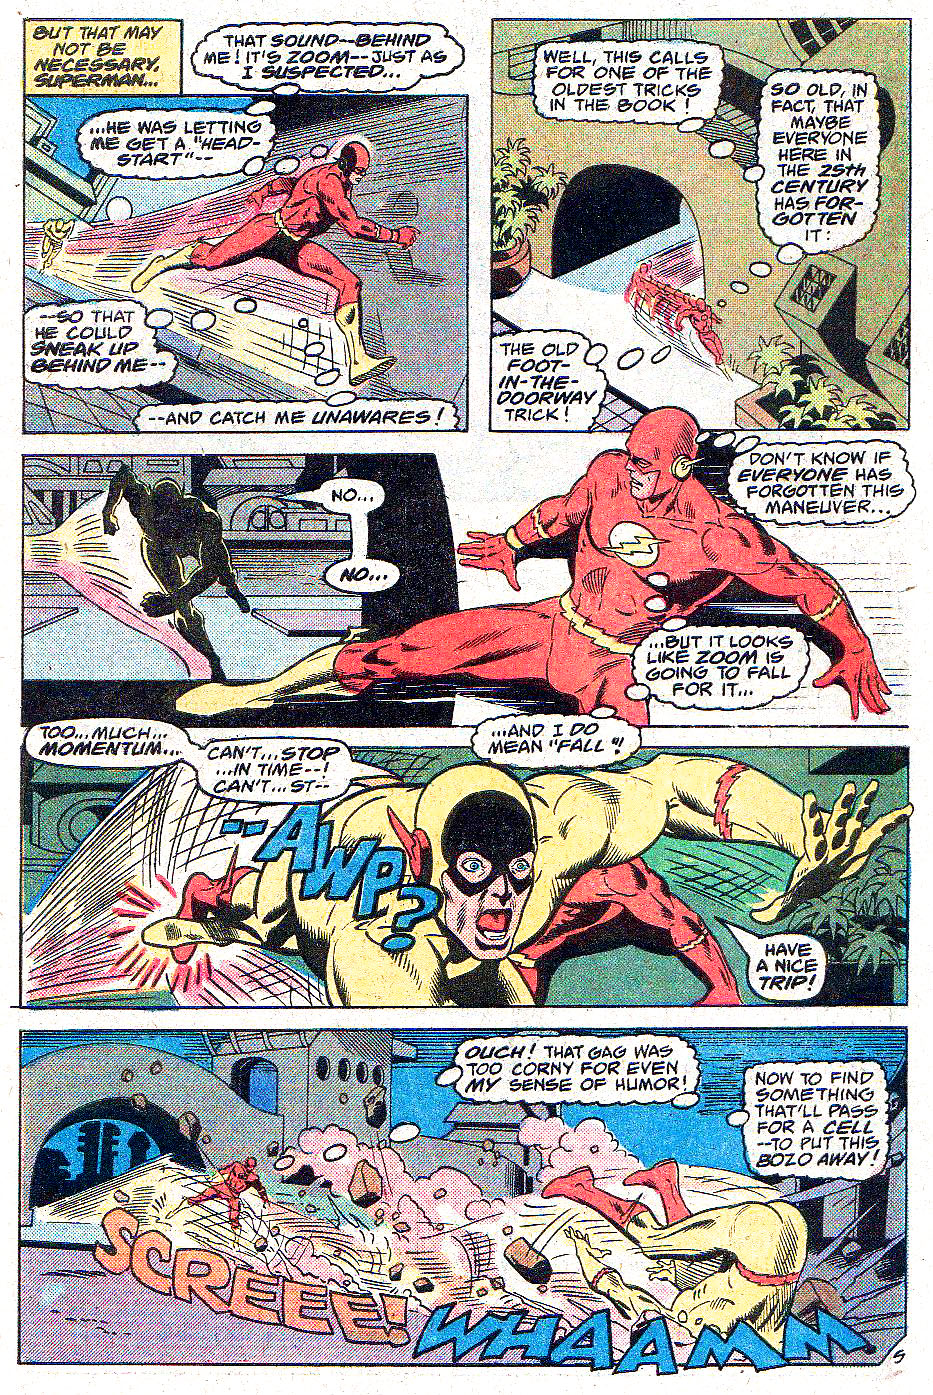 DC Comics Presents (1978) #2 pg.08, lettered by Clem Robins.